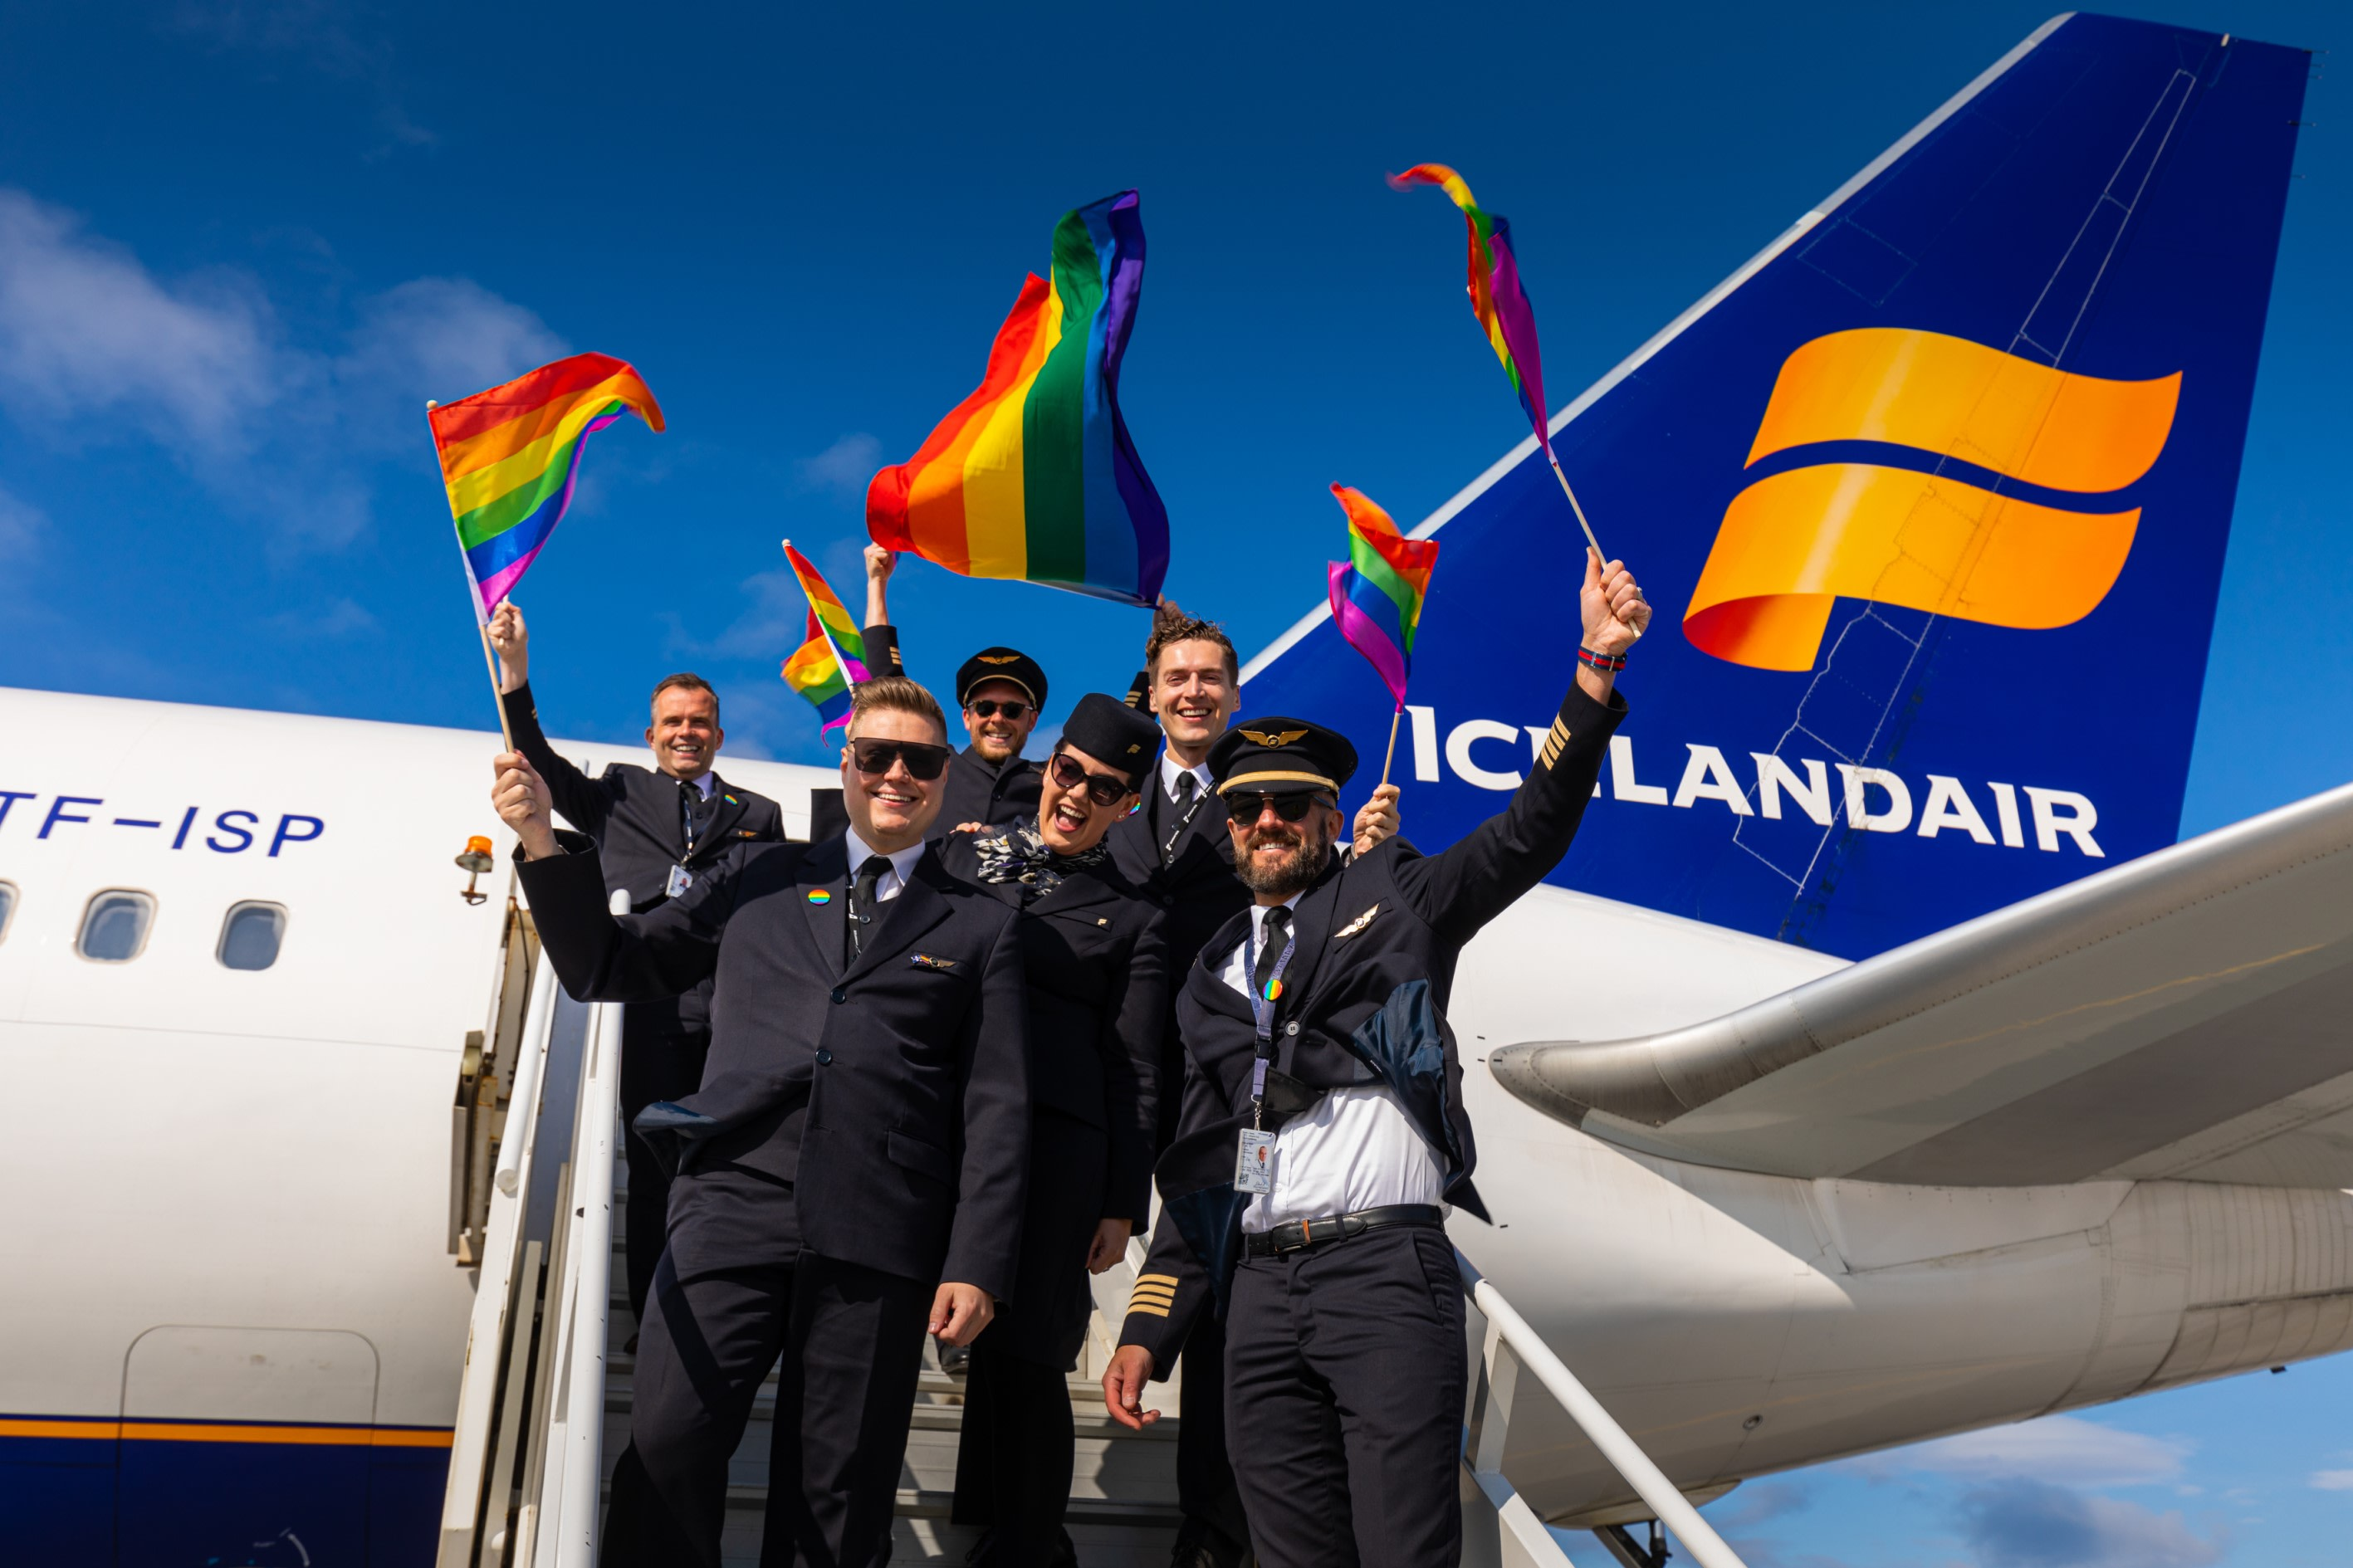 A group of Icelandair staff standing on the aircraft stairs flying the flag for Pride